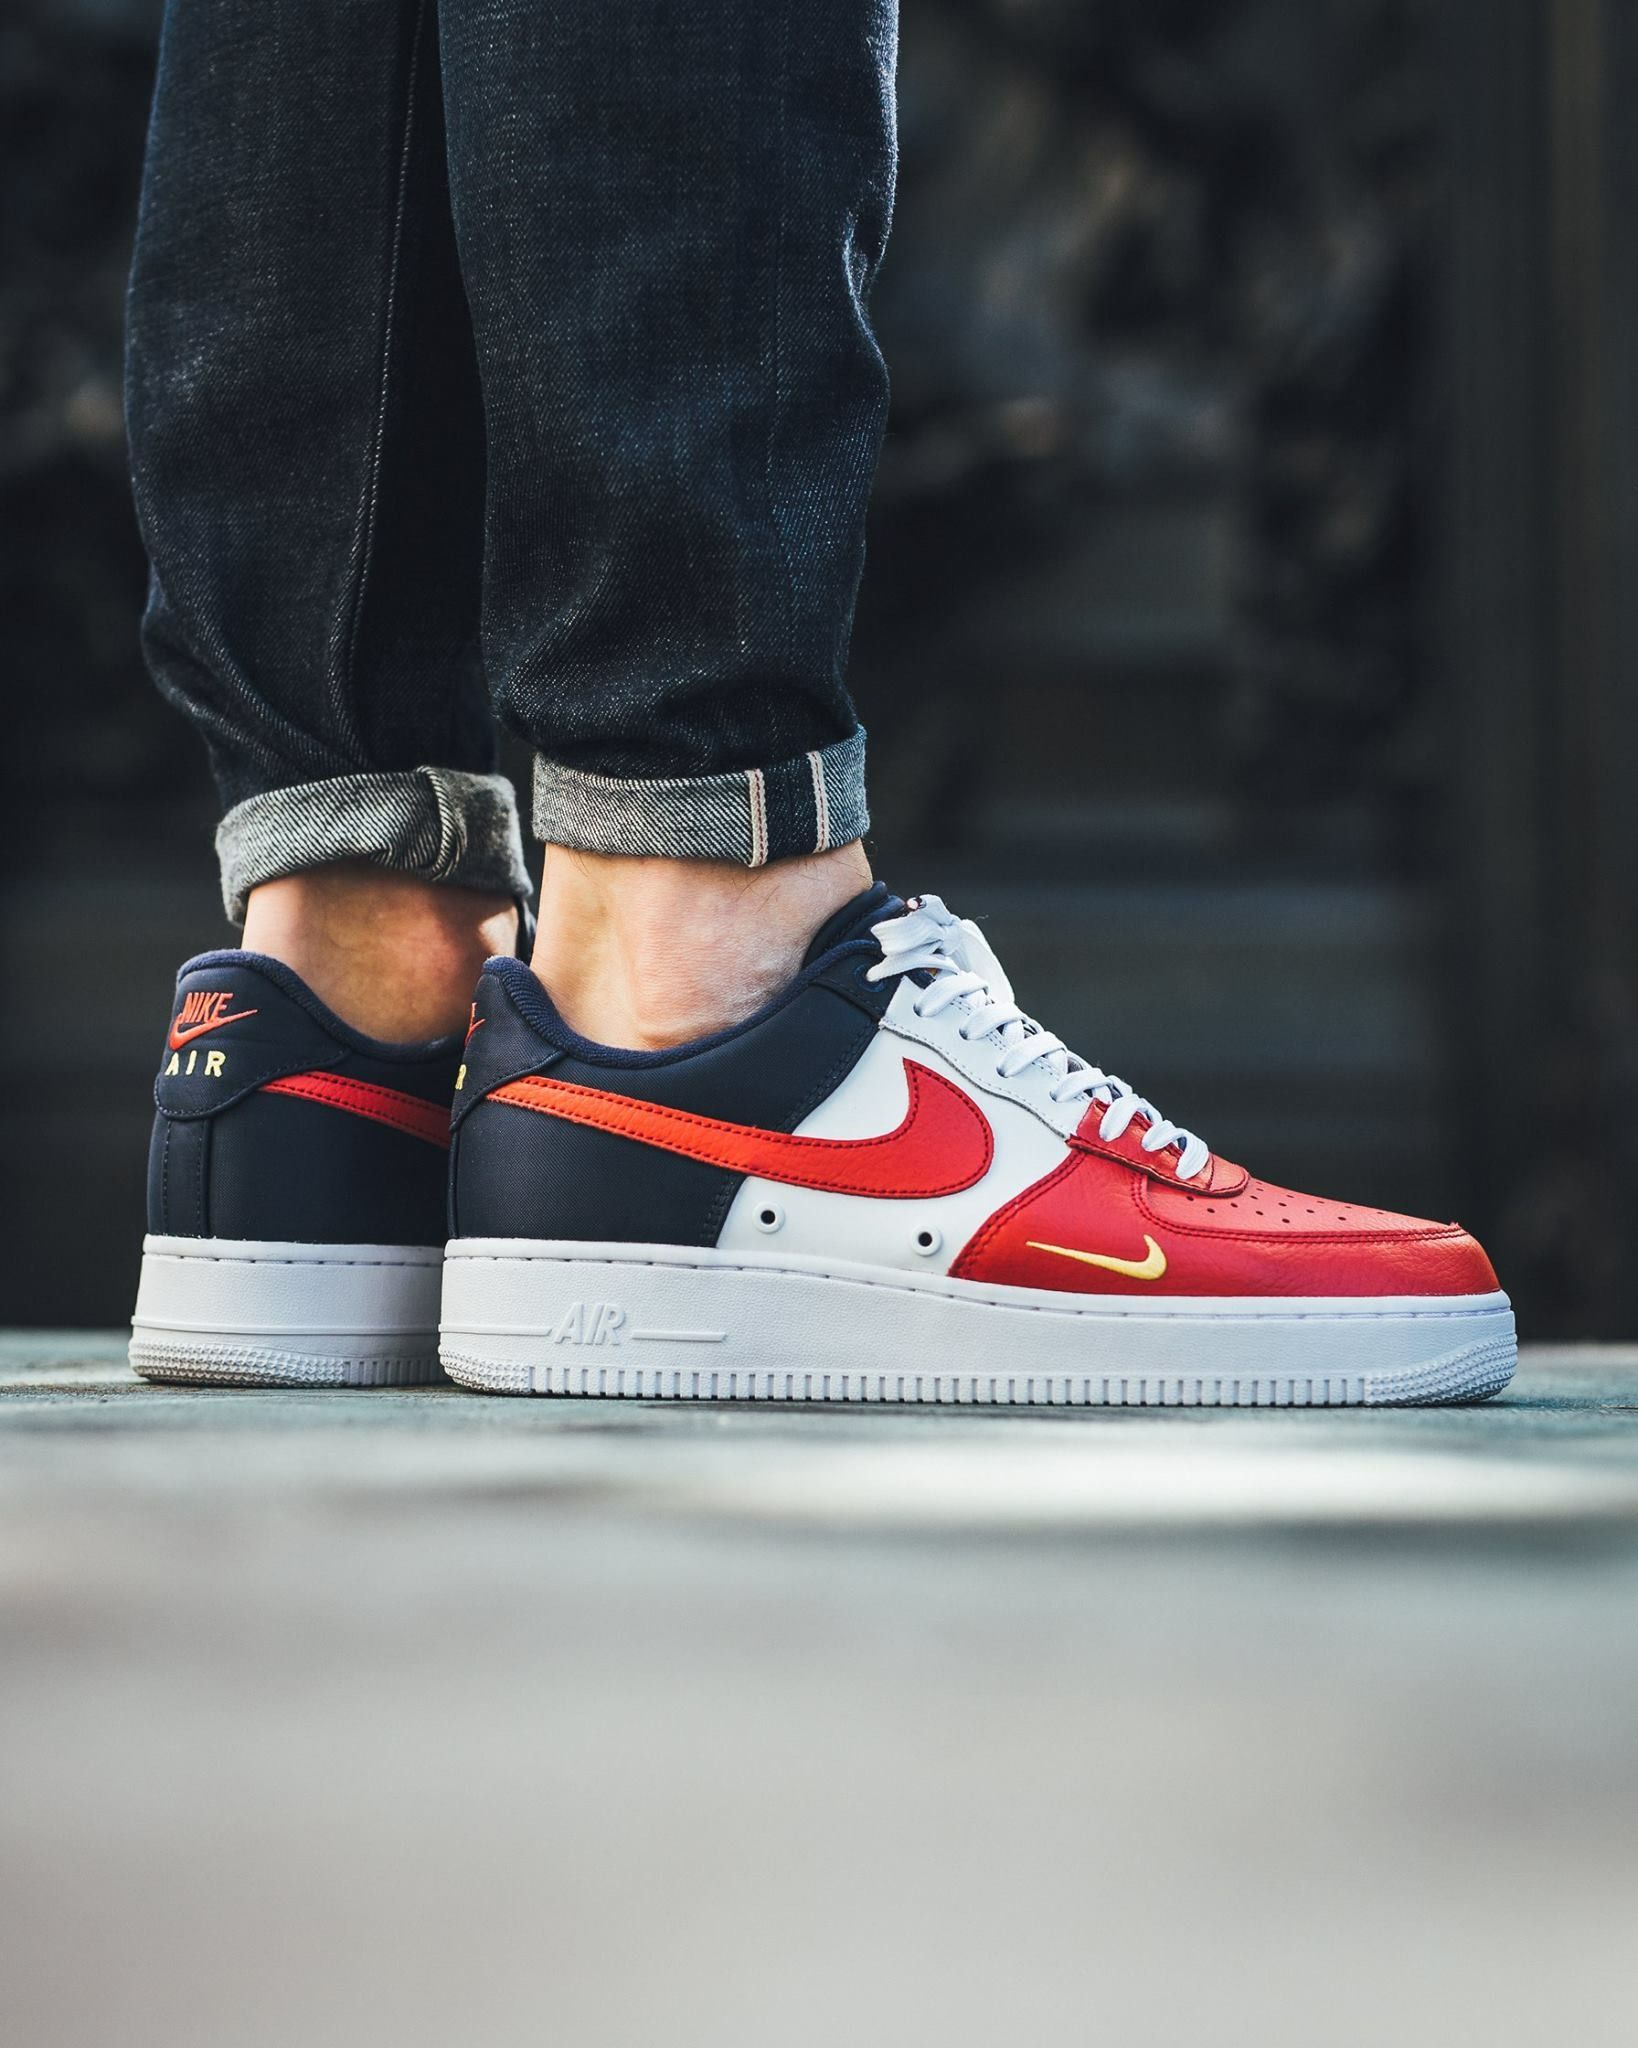 ac91b783b93a Nike Air Force 1 LV07